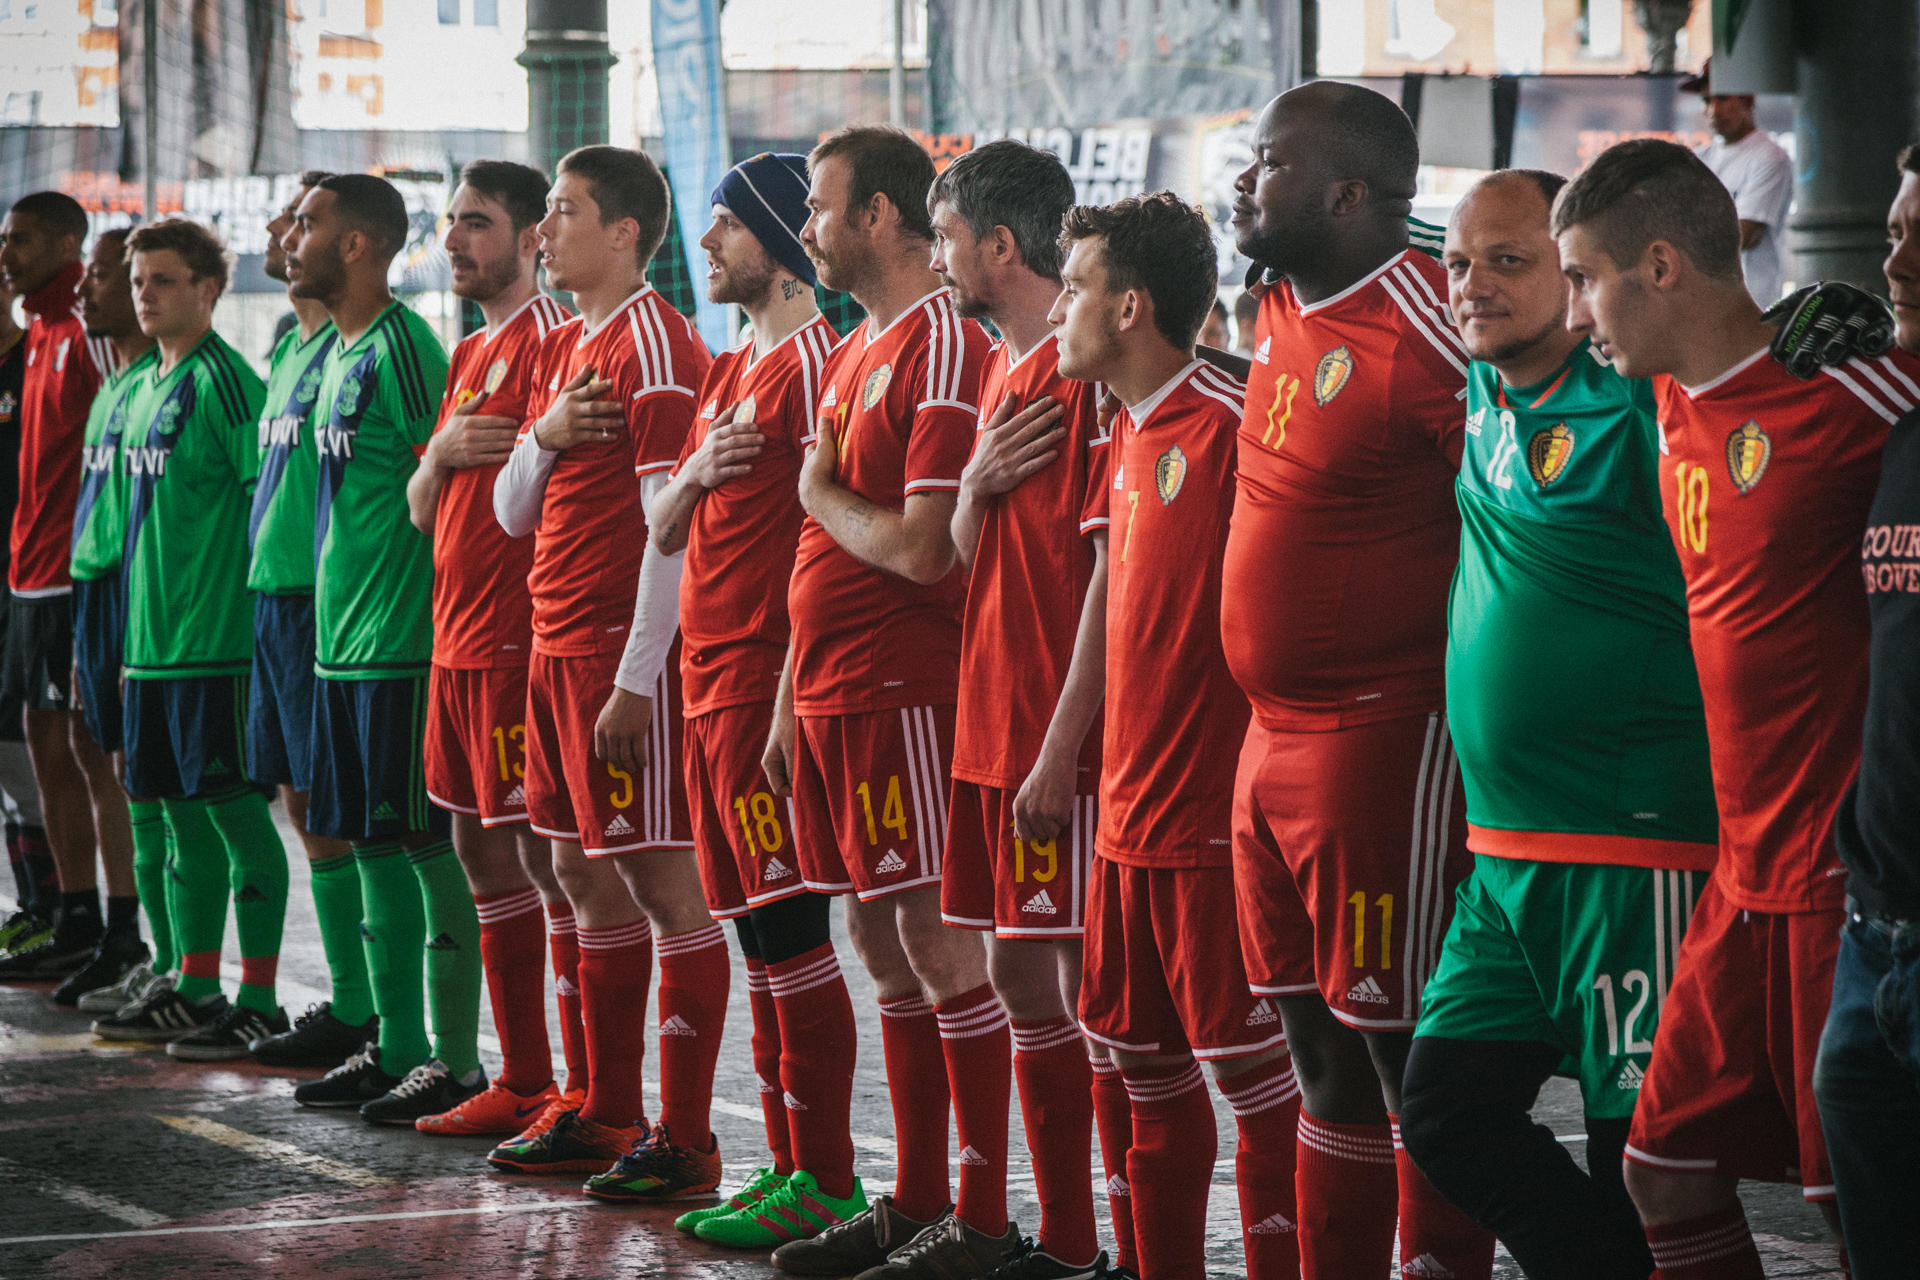 2016_BelgianHomelessCup_lores-95.jpg